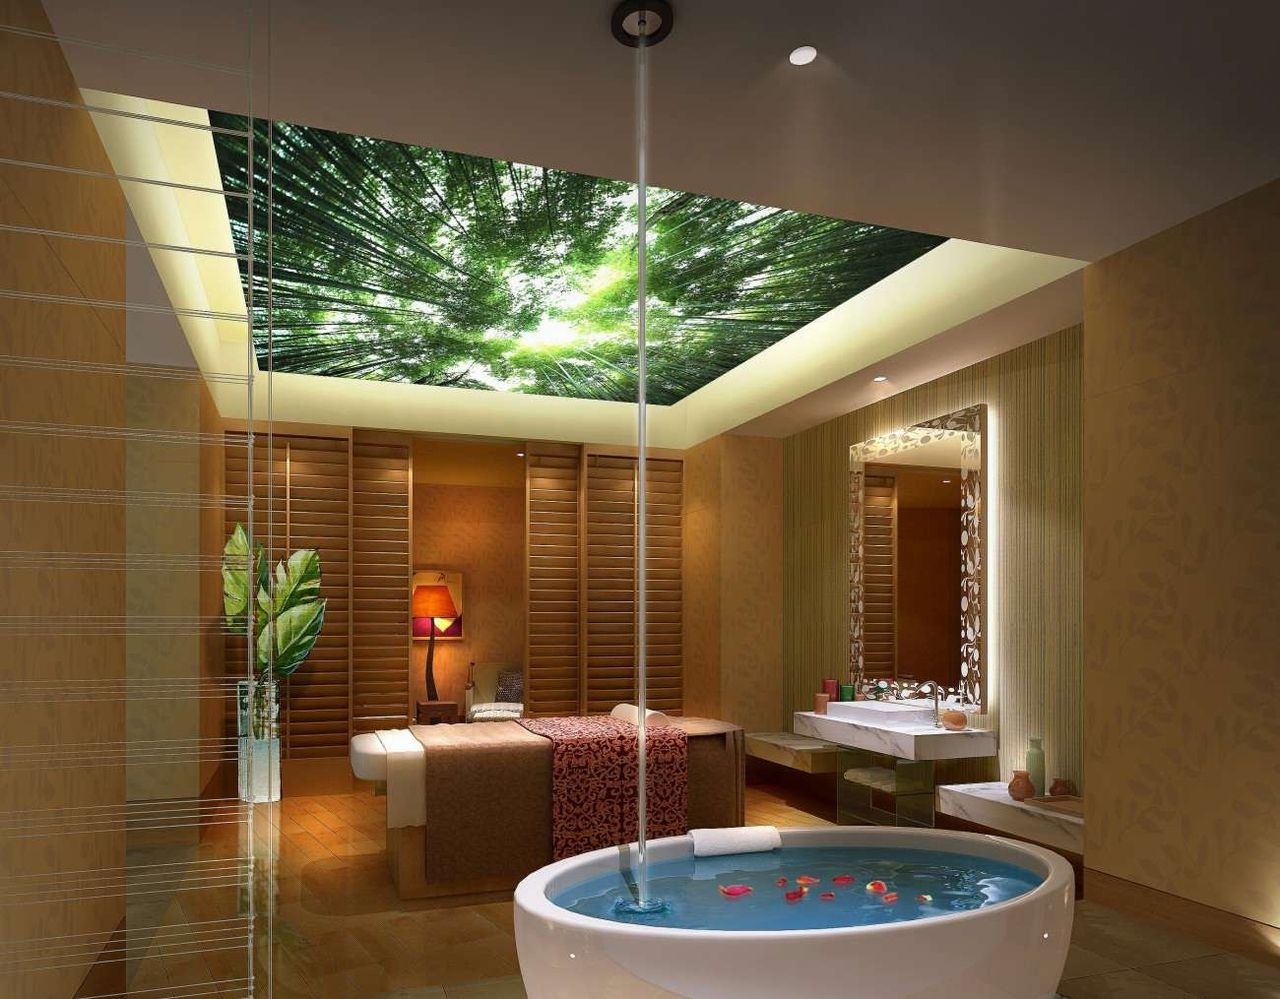 Thanku0027s For Sharing This Post Spa Interior Design Bathroom Spa Room  Interior Design